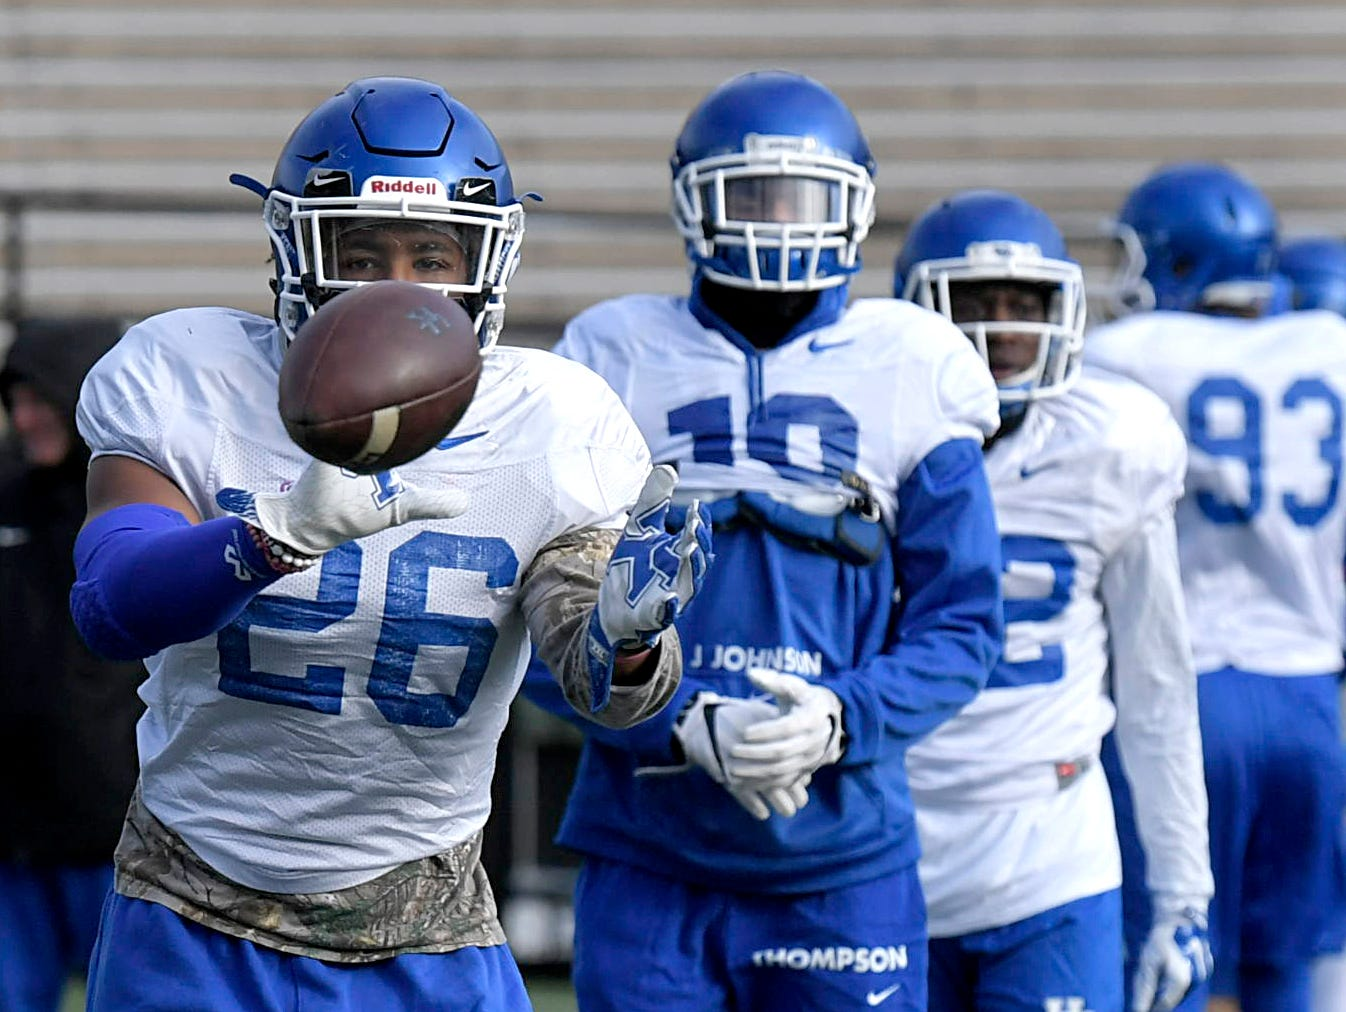 Uk Basketball: In Nashville For The Music City Bowl? Here's Where To